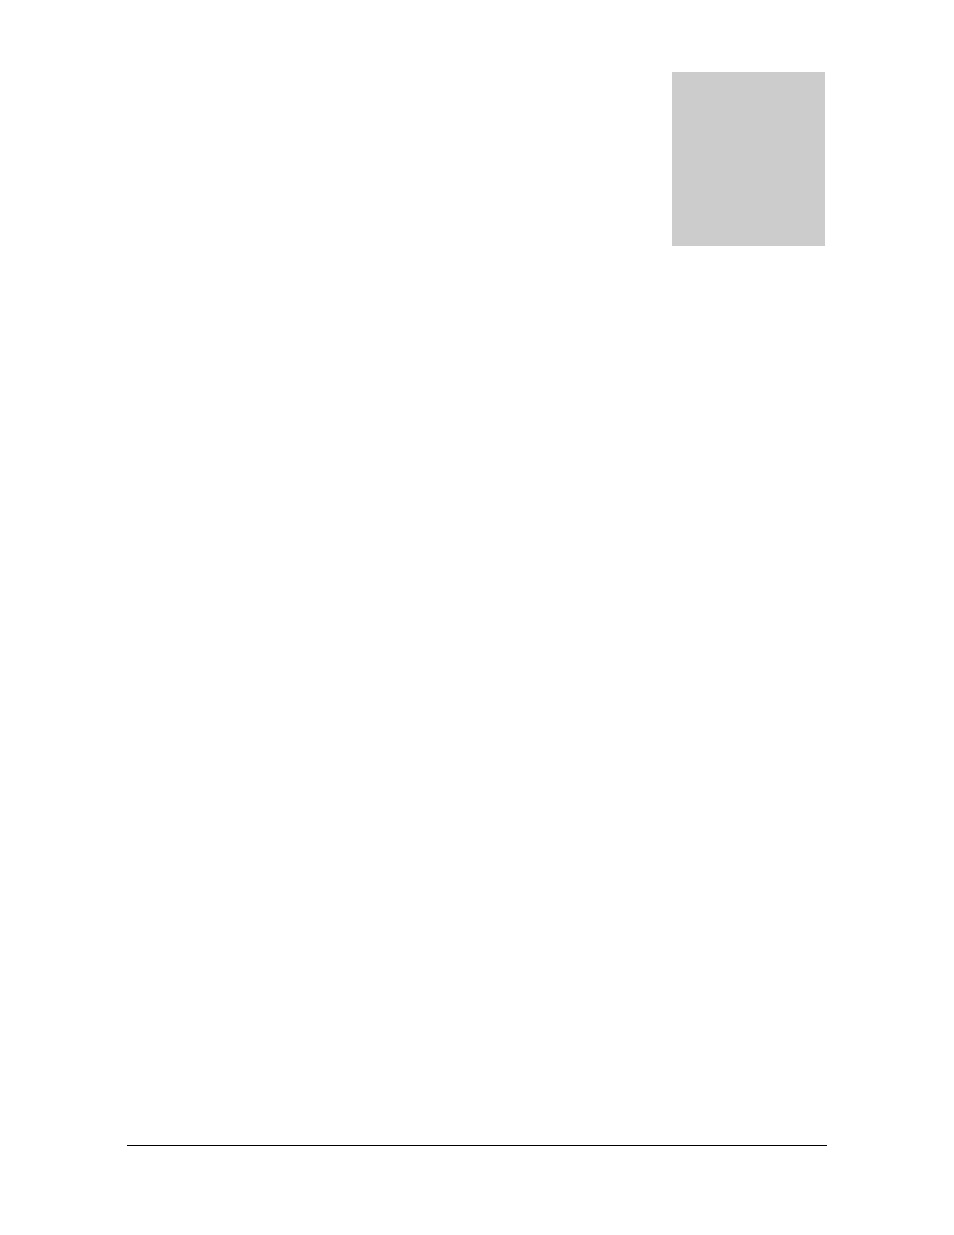 Chapter 4 | EDGE Tech Digital Picture Frame User Manual